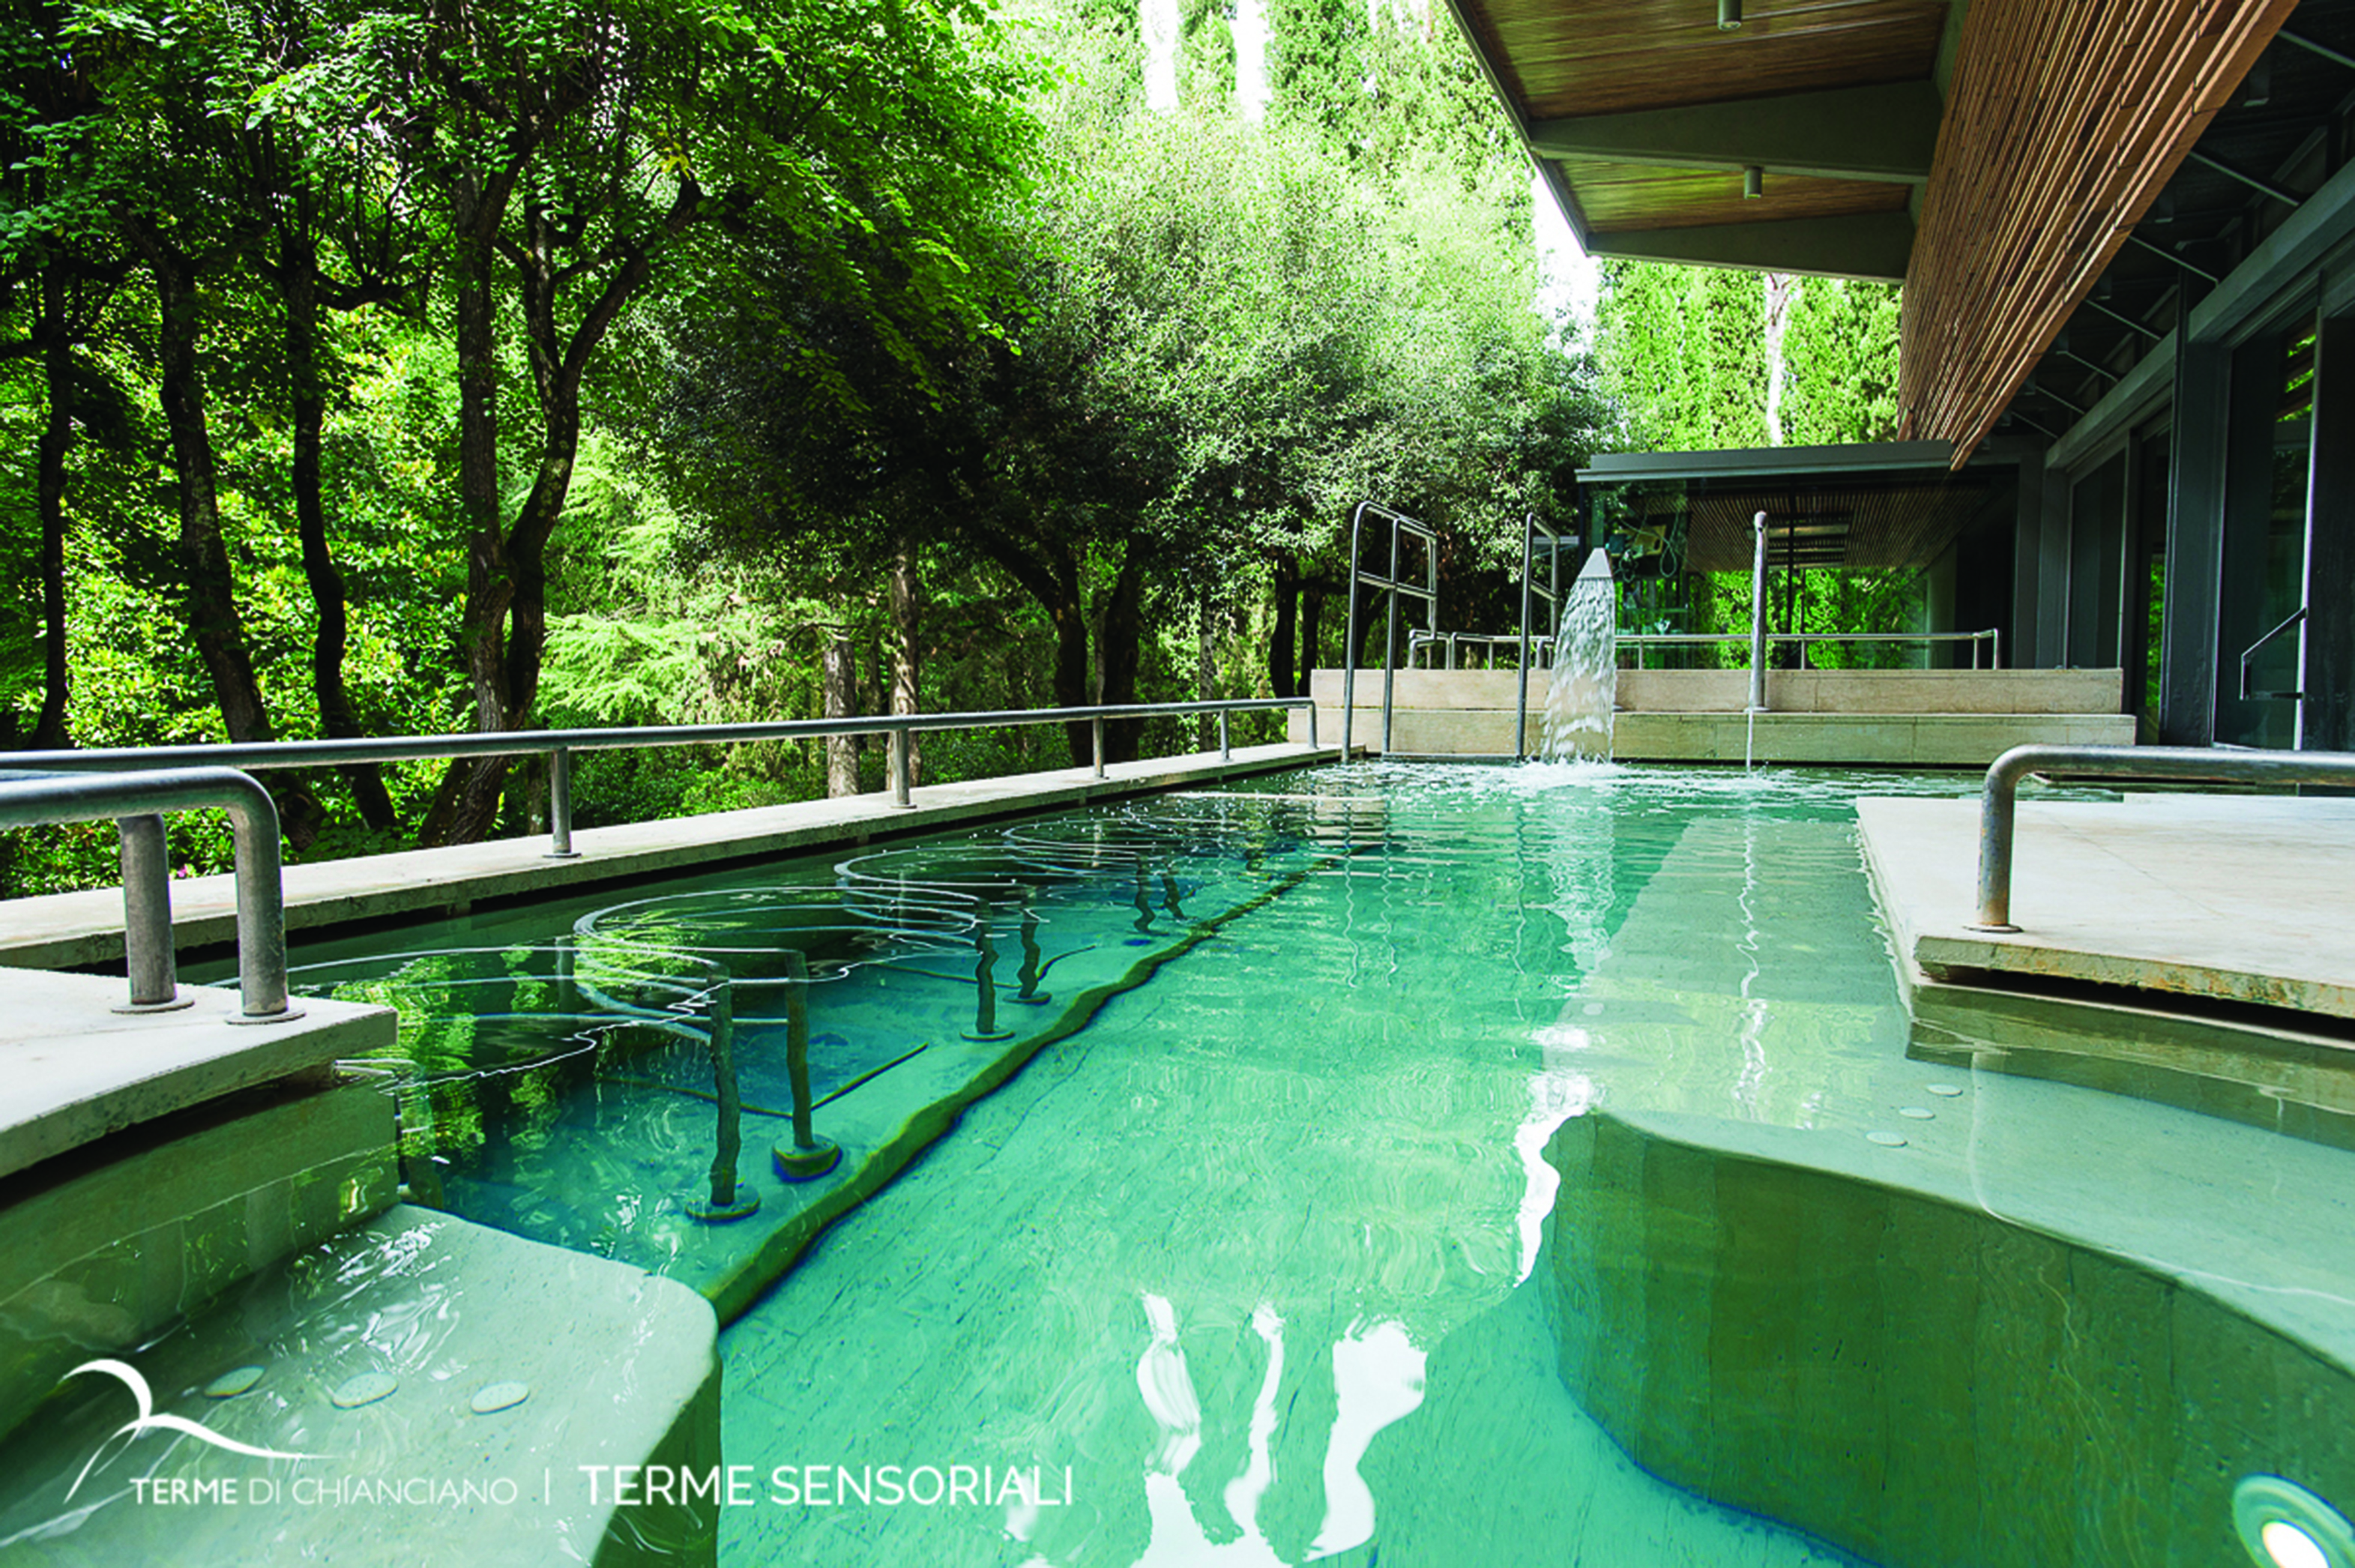 Best Spas In Italy From Thermal Bathing To Wellness Temples Italy Travel And Life Italy Travel And Life